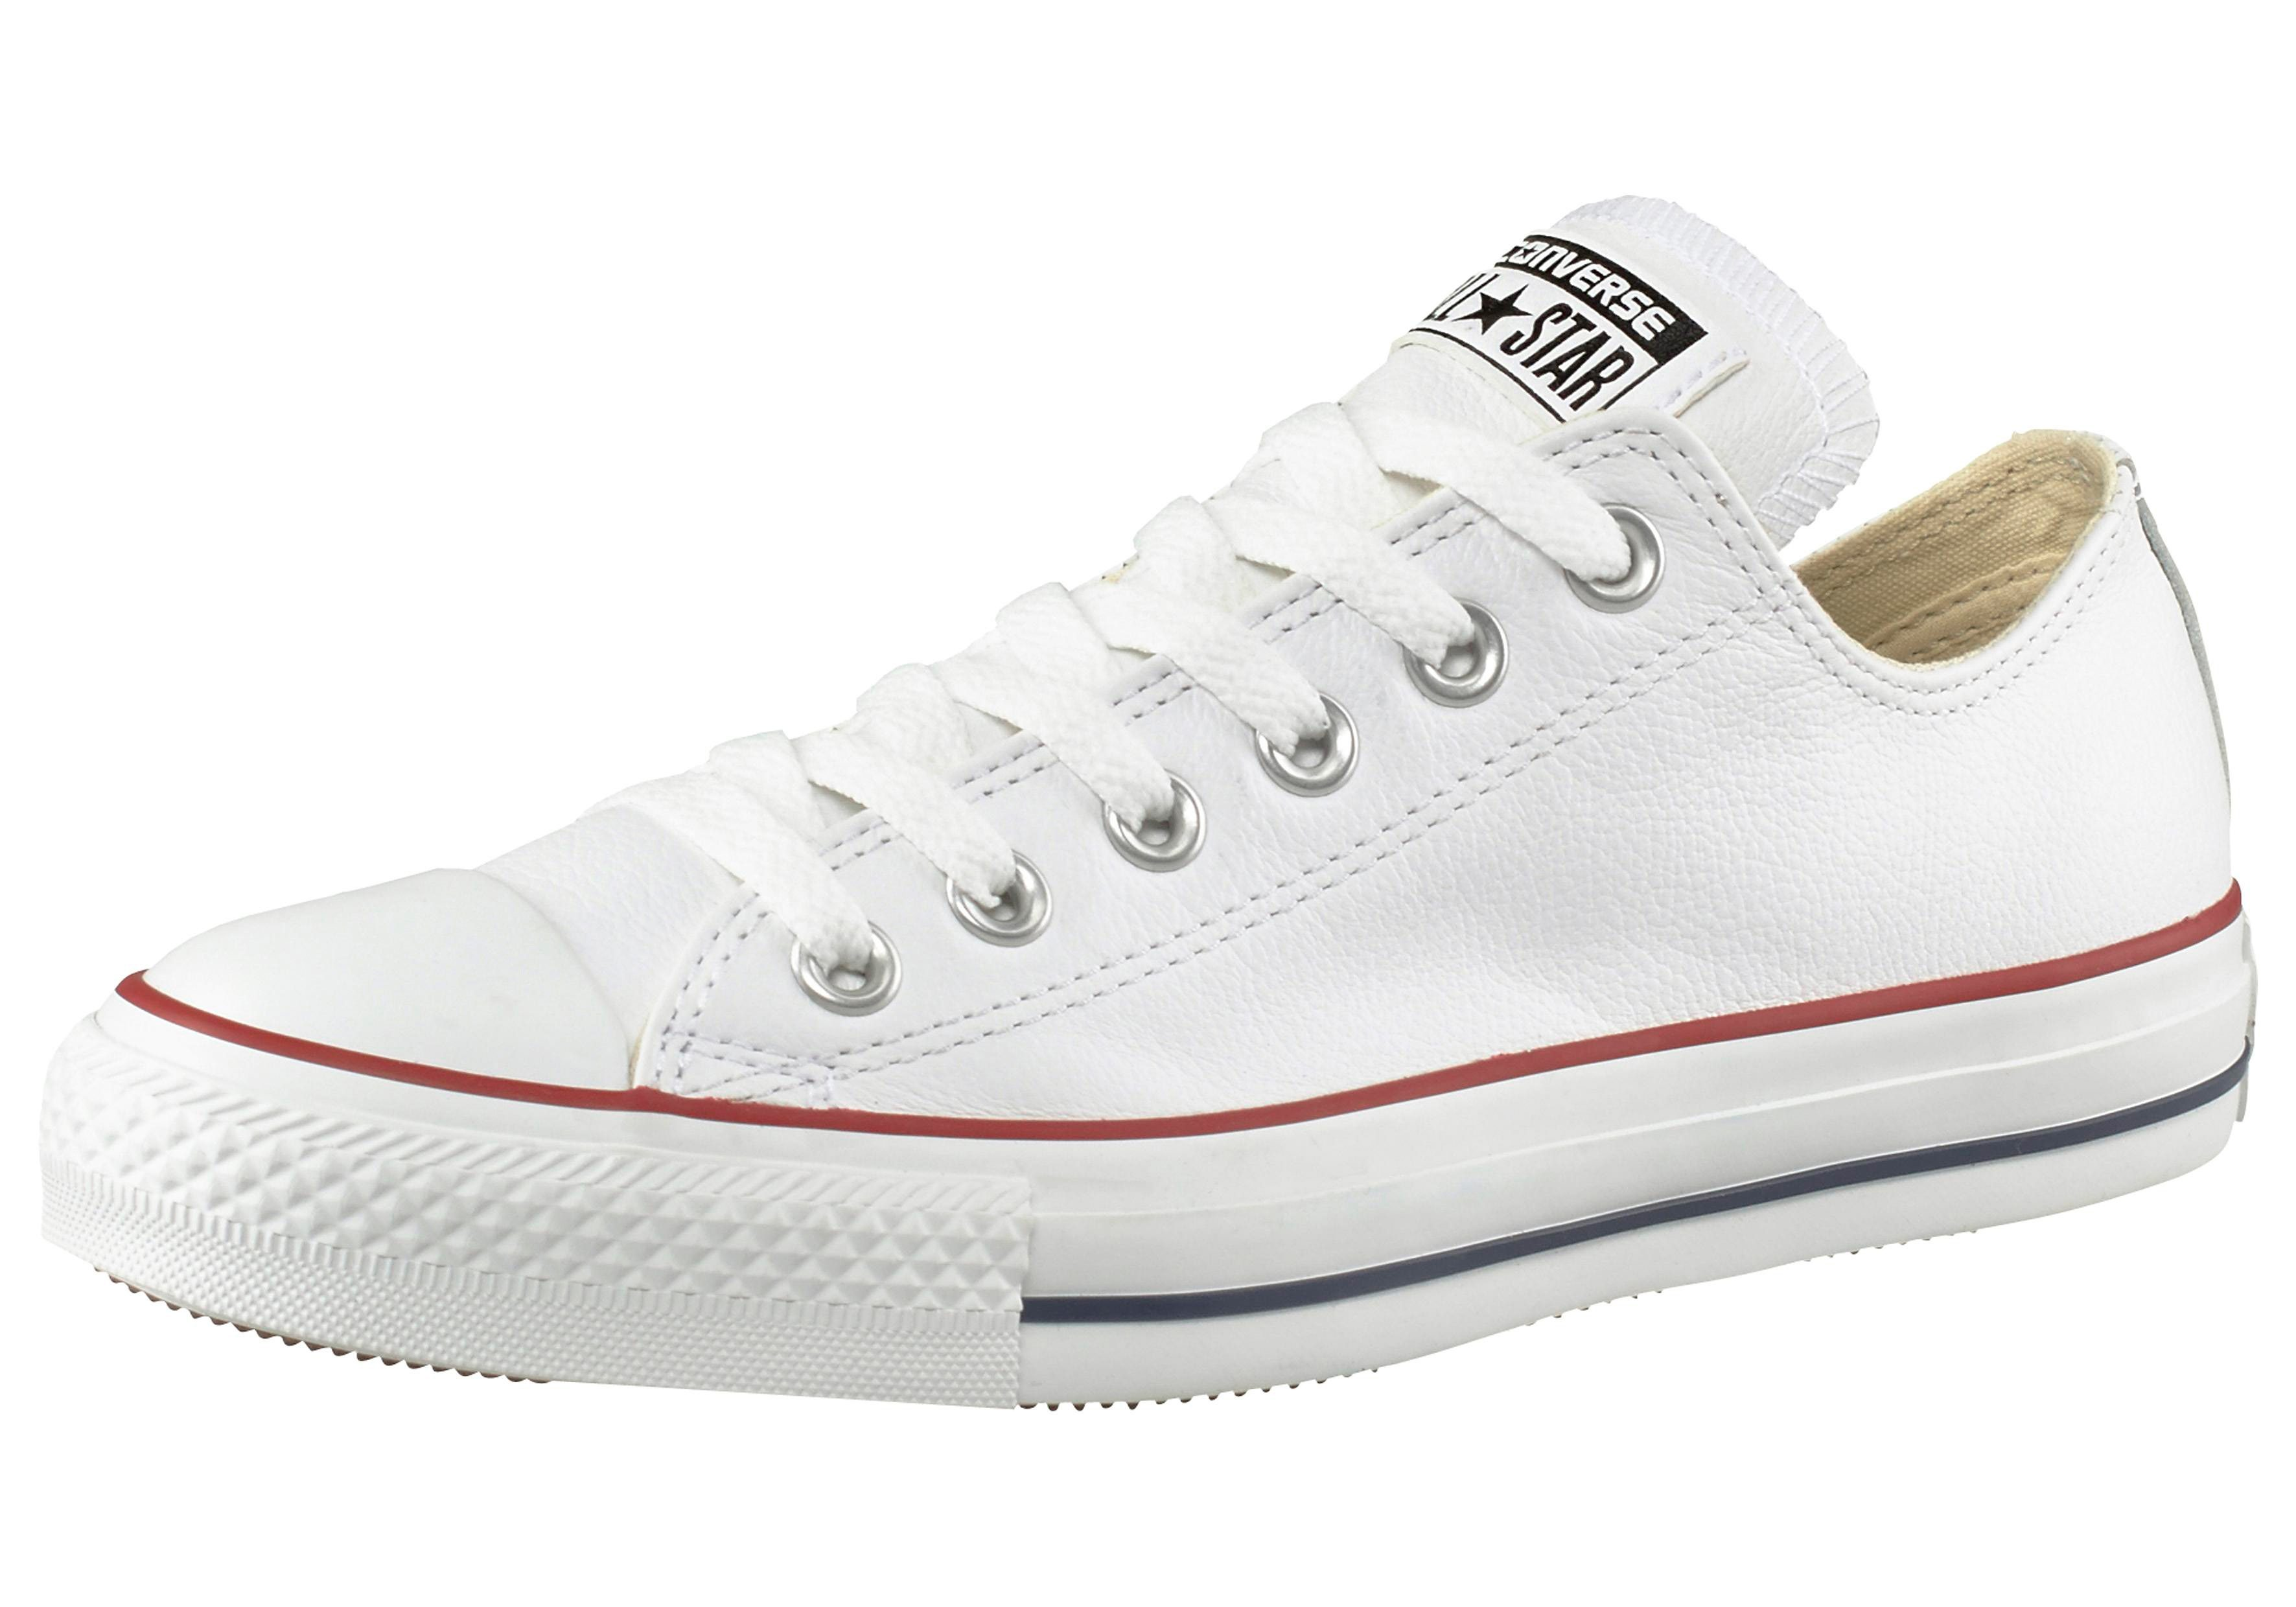 Converse Chuck Taylor All Star Basic Leather Ox Sneaker online kaufen  weiß